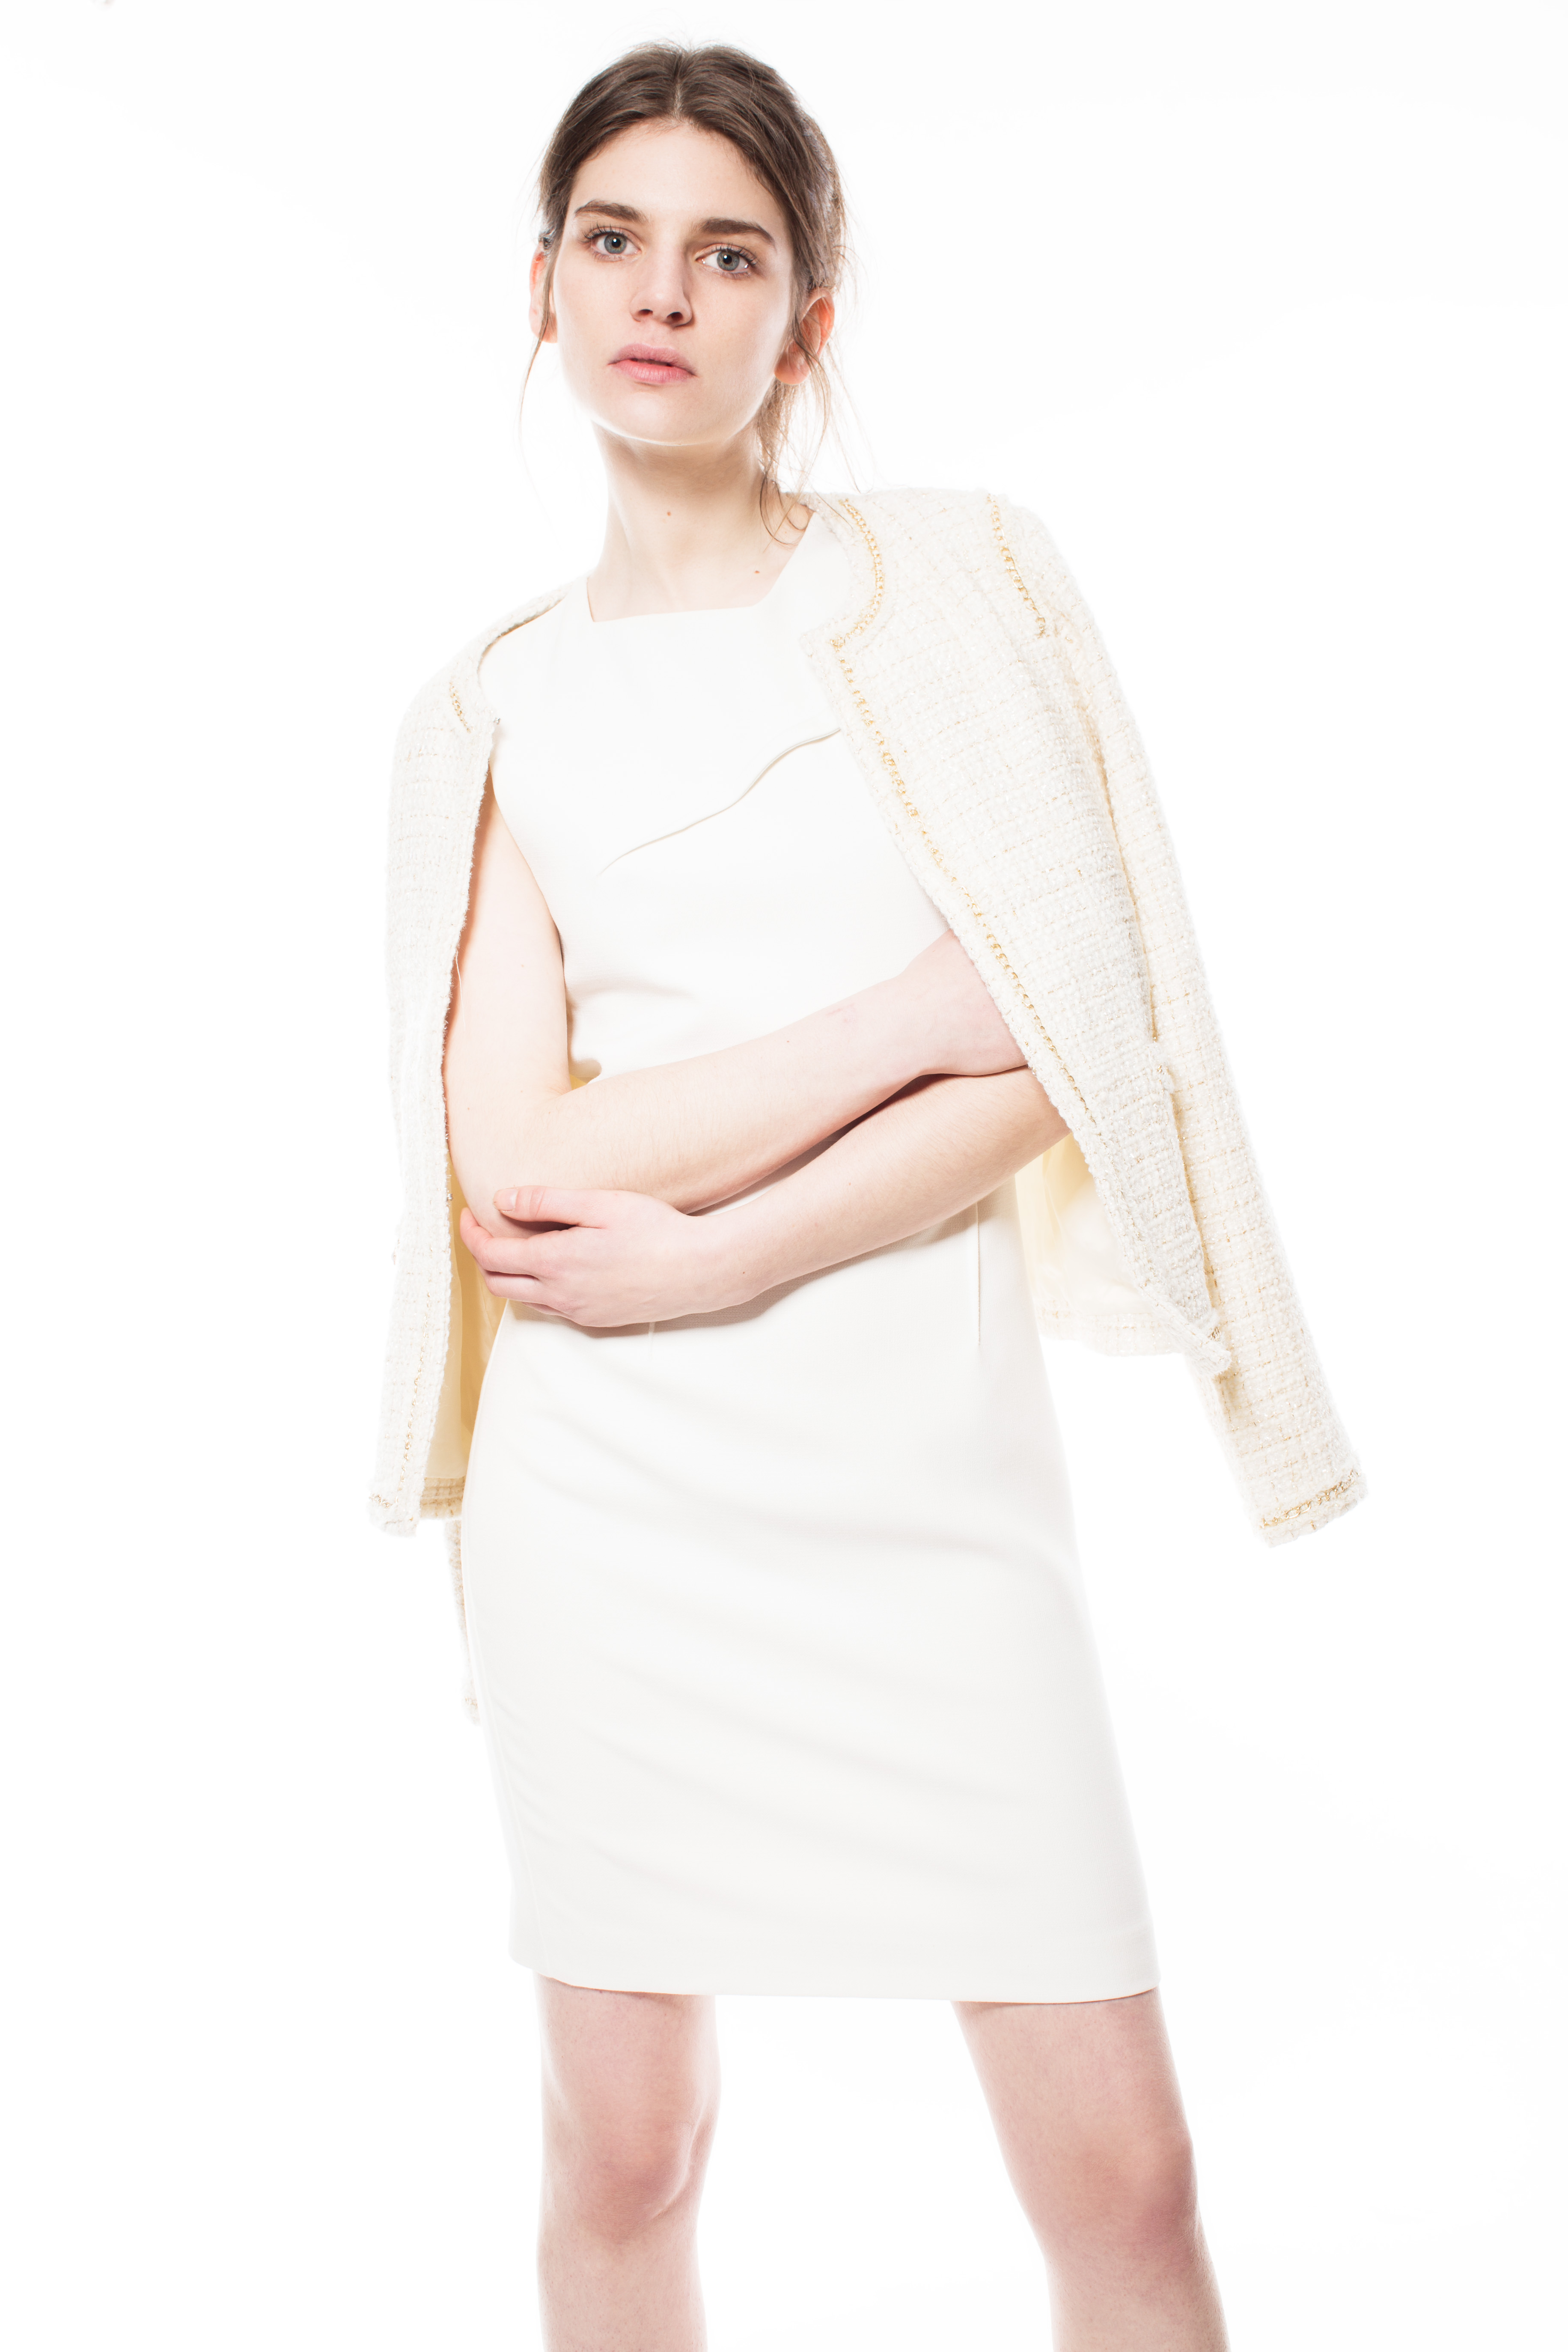 Jackie O Style Blazer with Tailored Dress with Back Detail